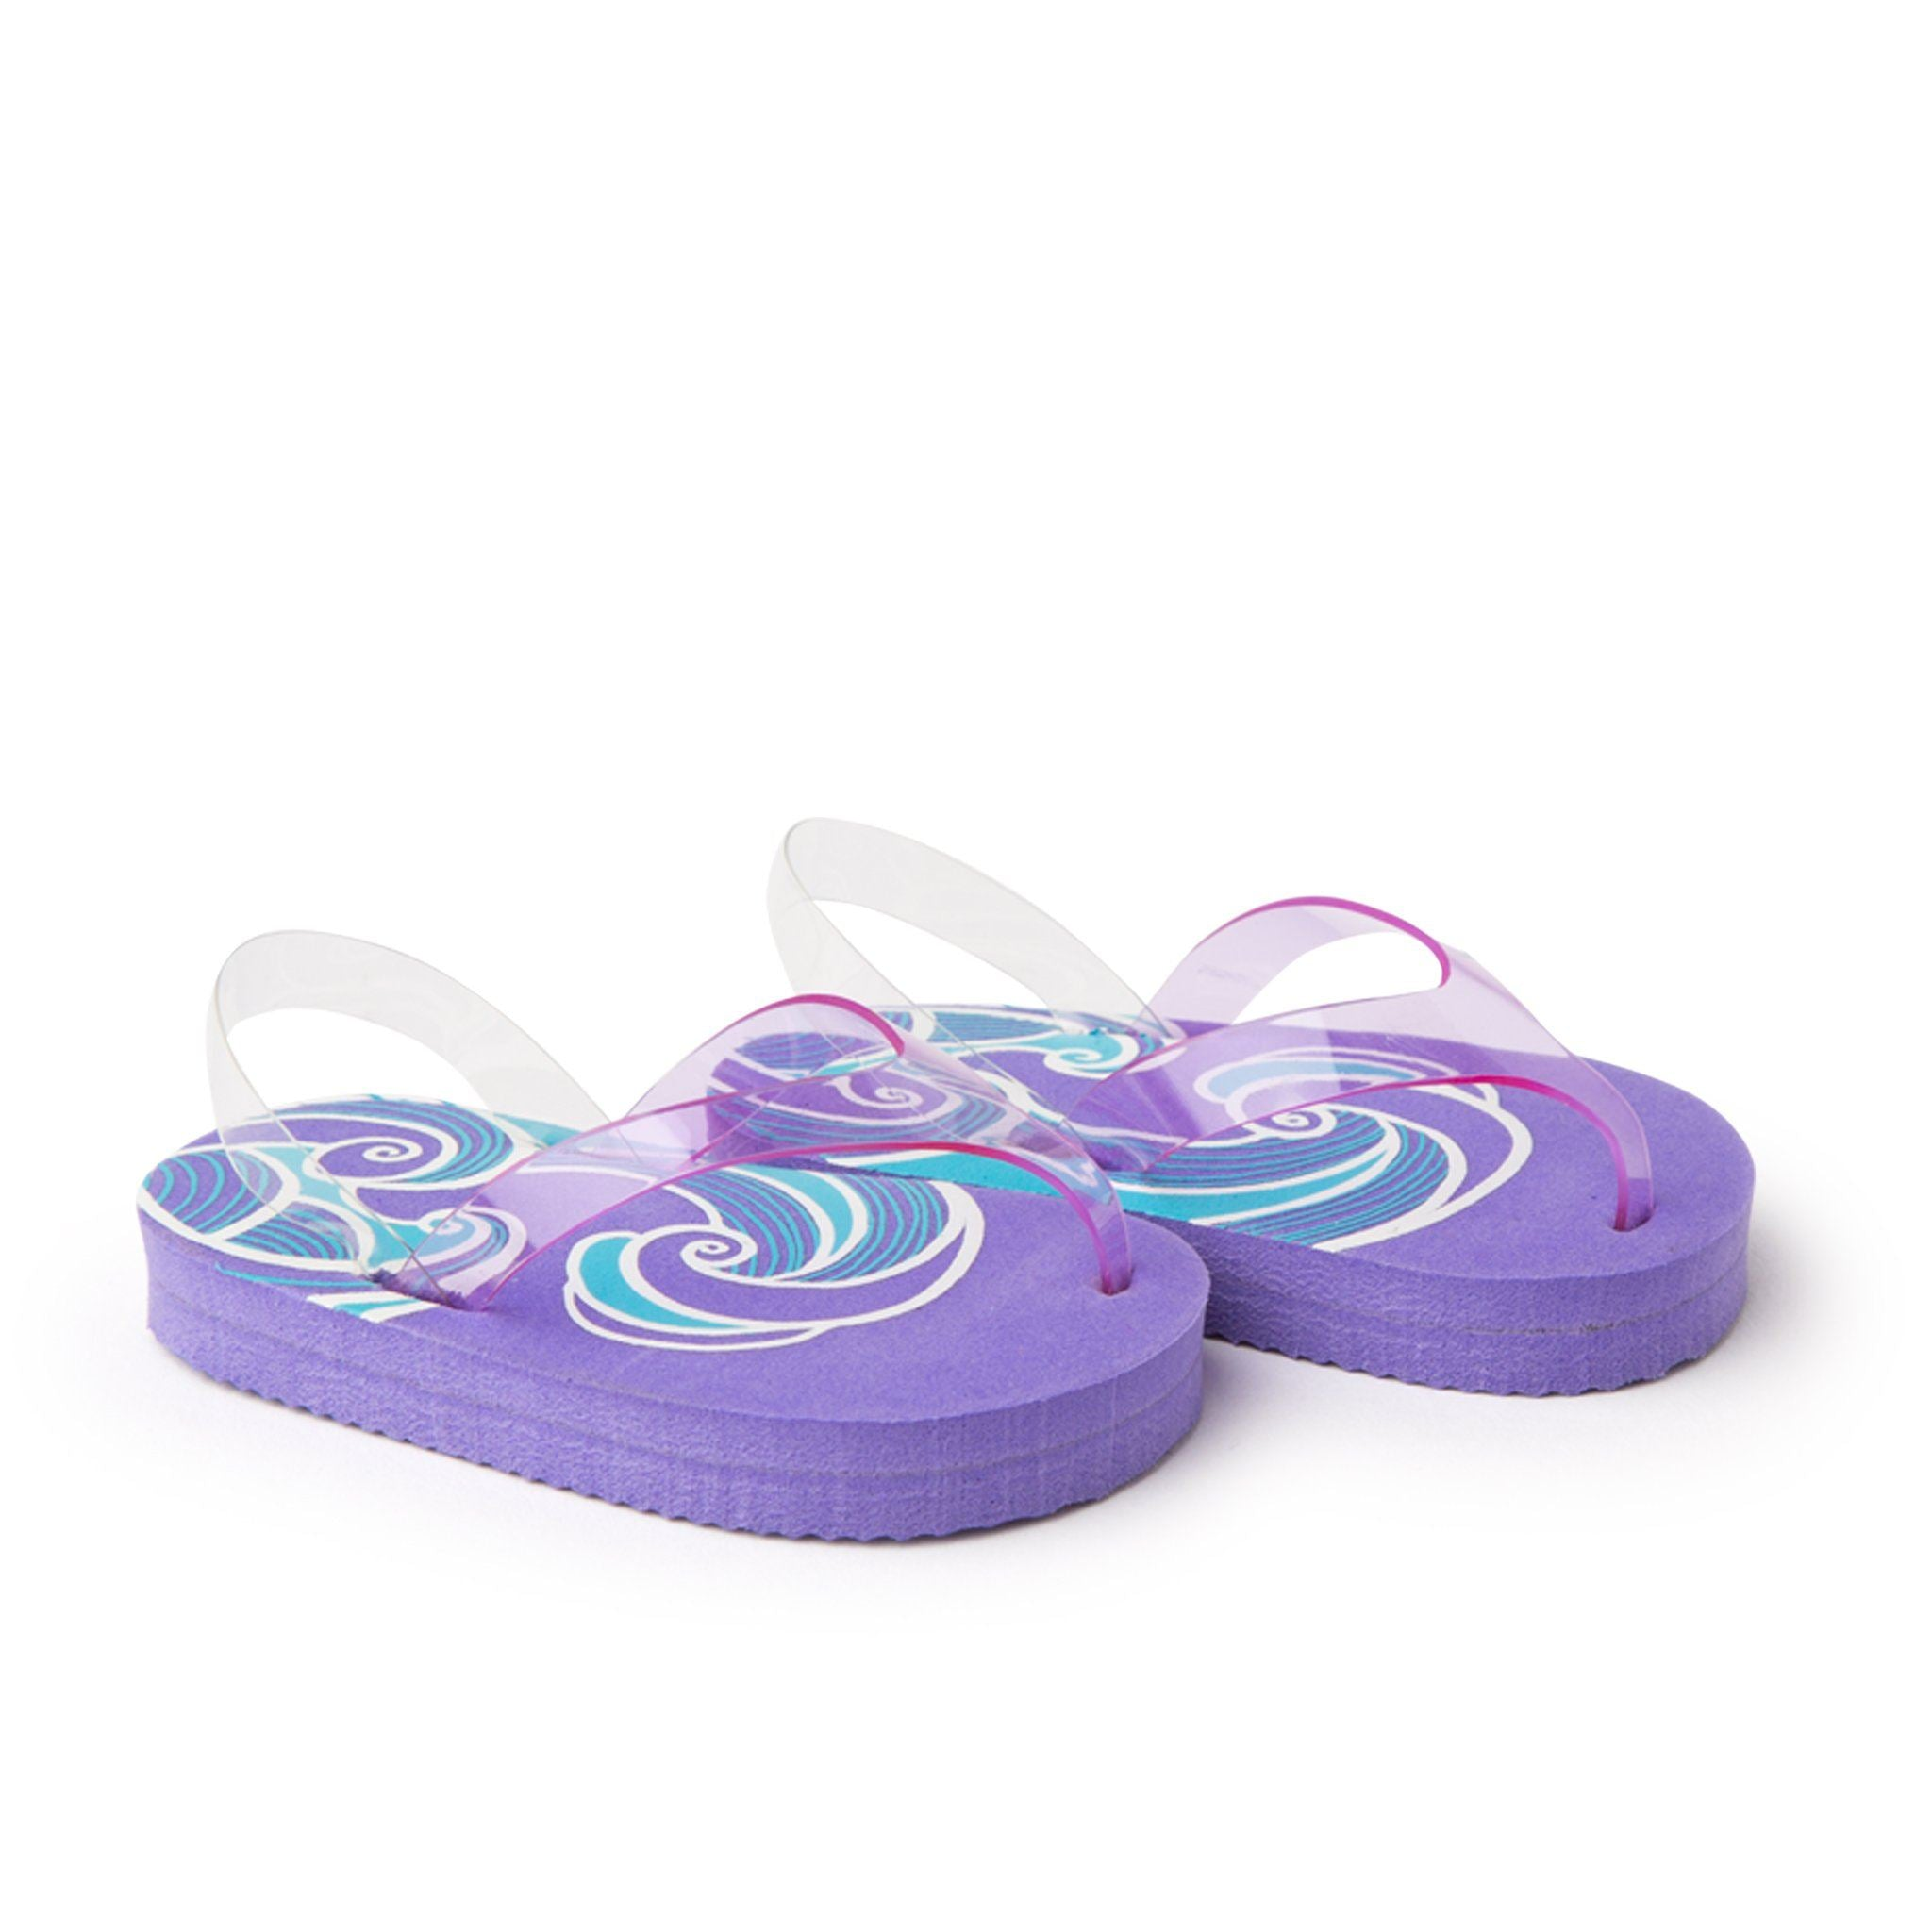 Purple flip-flop sandals fits all 18 inch dolls.